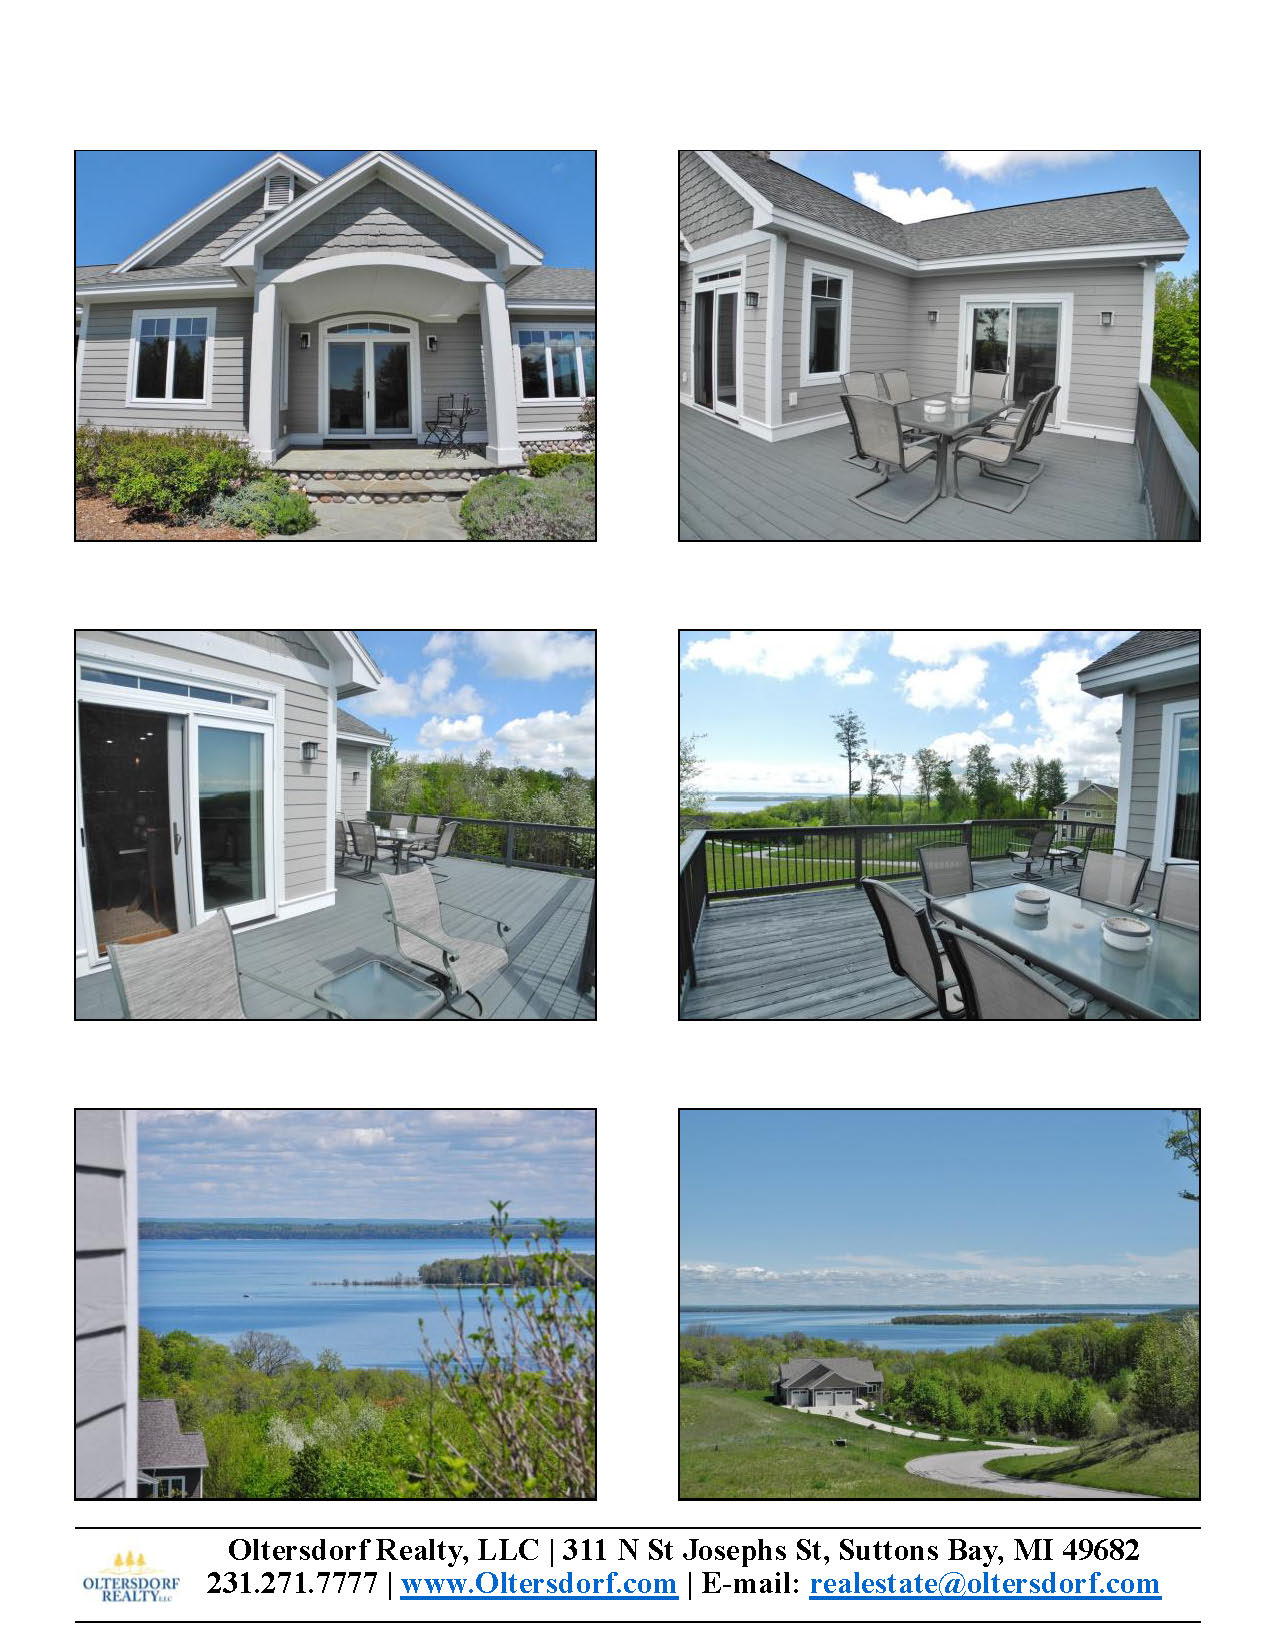 1900 N Blue Water Ct, Suttons Bay, MI – Ranch Home & Water Views - Marketing PAcket by Oltersdorf Realty LLC (3).jpg